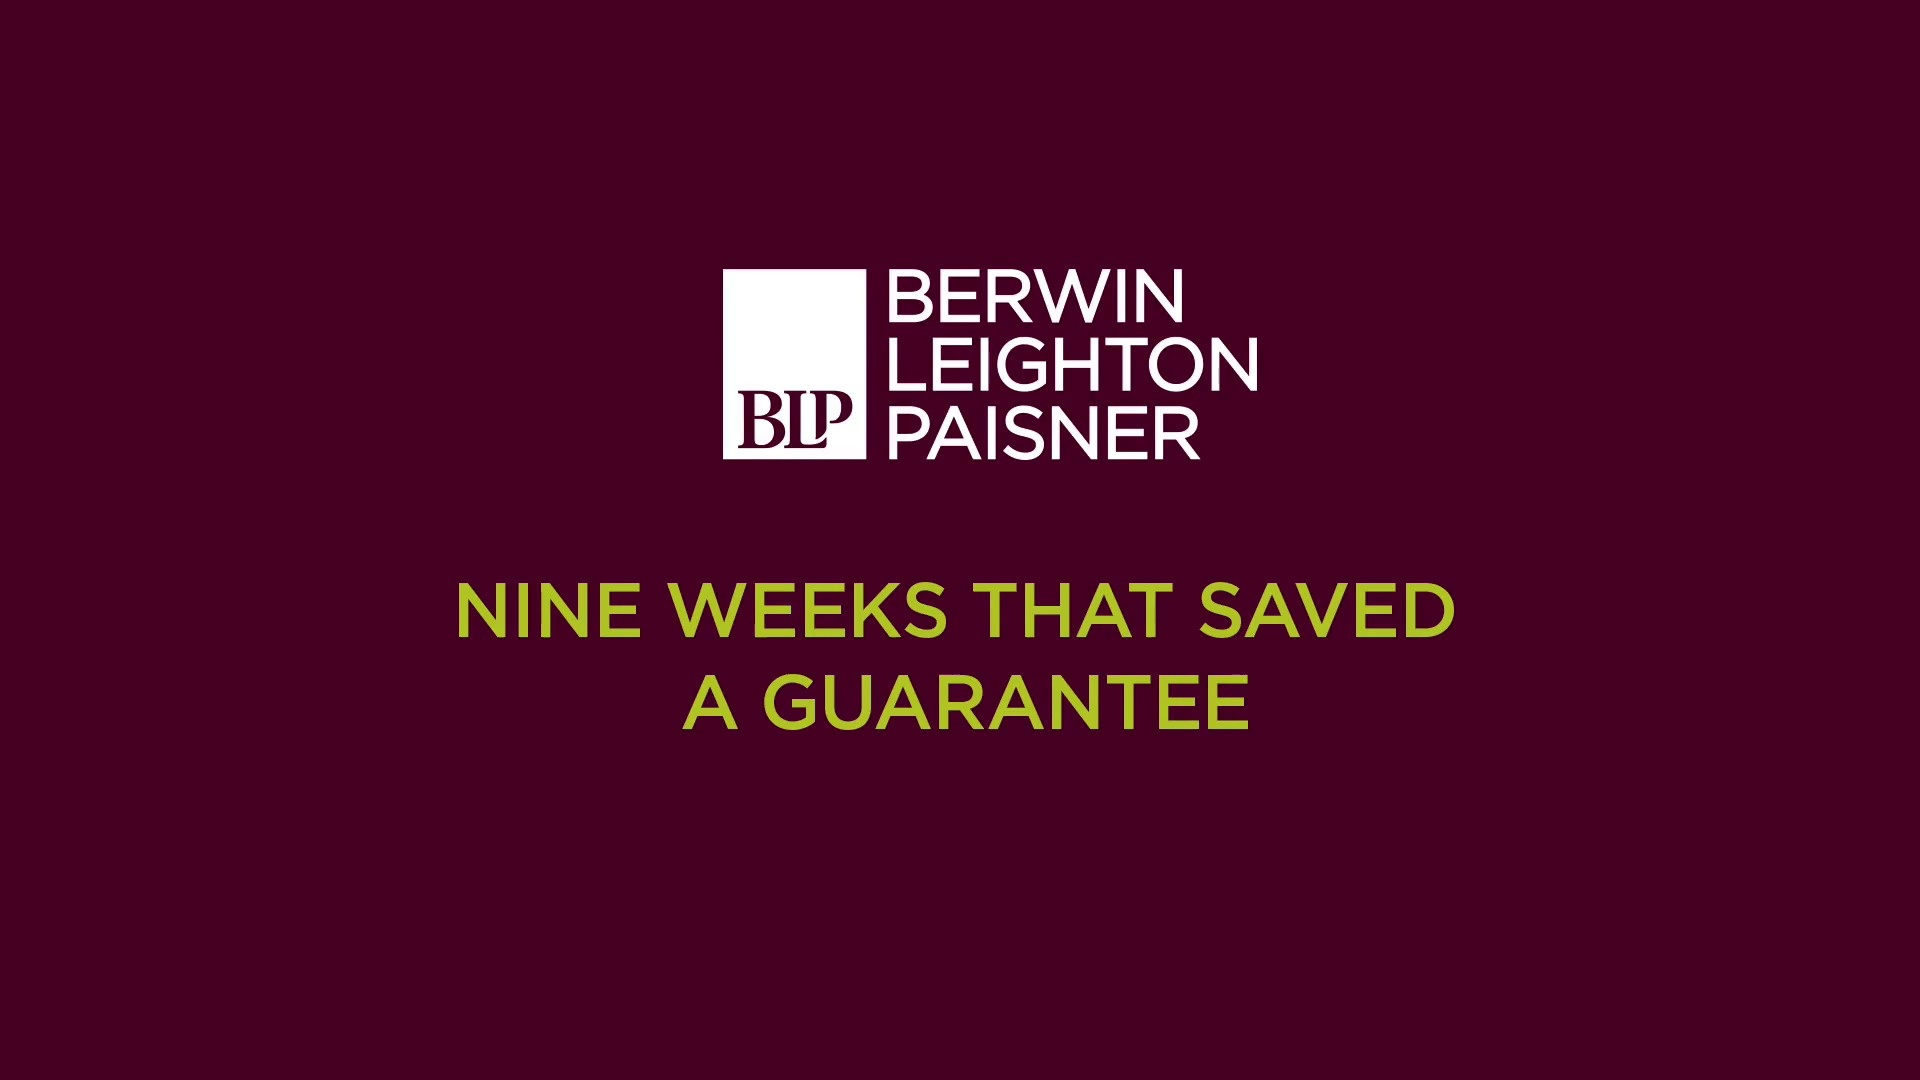 Still image from 'Nine weeks that saved a guarantee' video